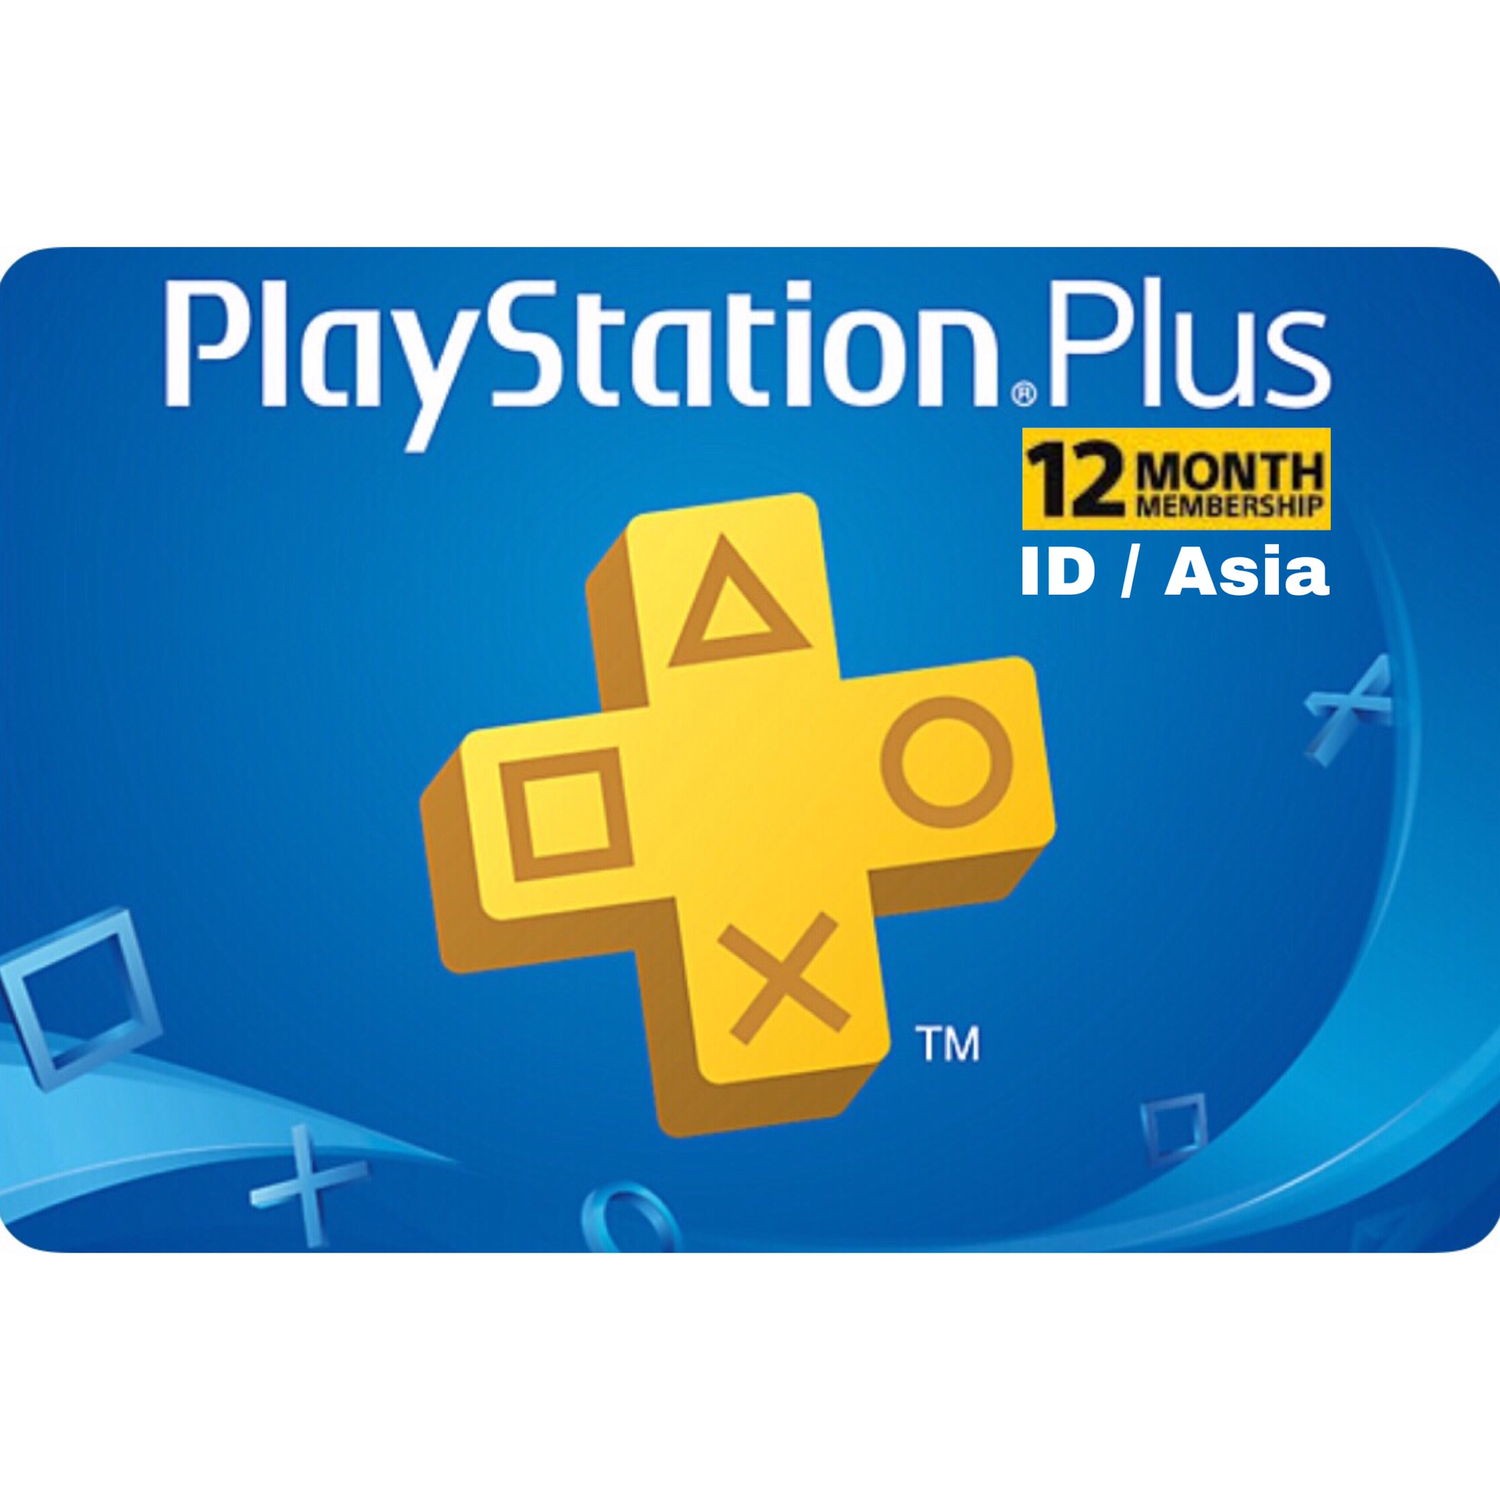 PSN Plus Card - Playstation Plus Indonesia / Asia 12 Months Membership